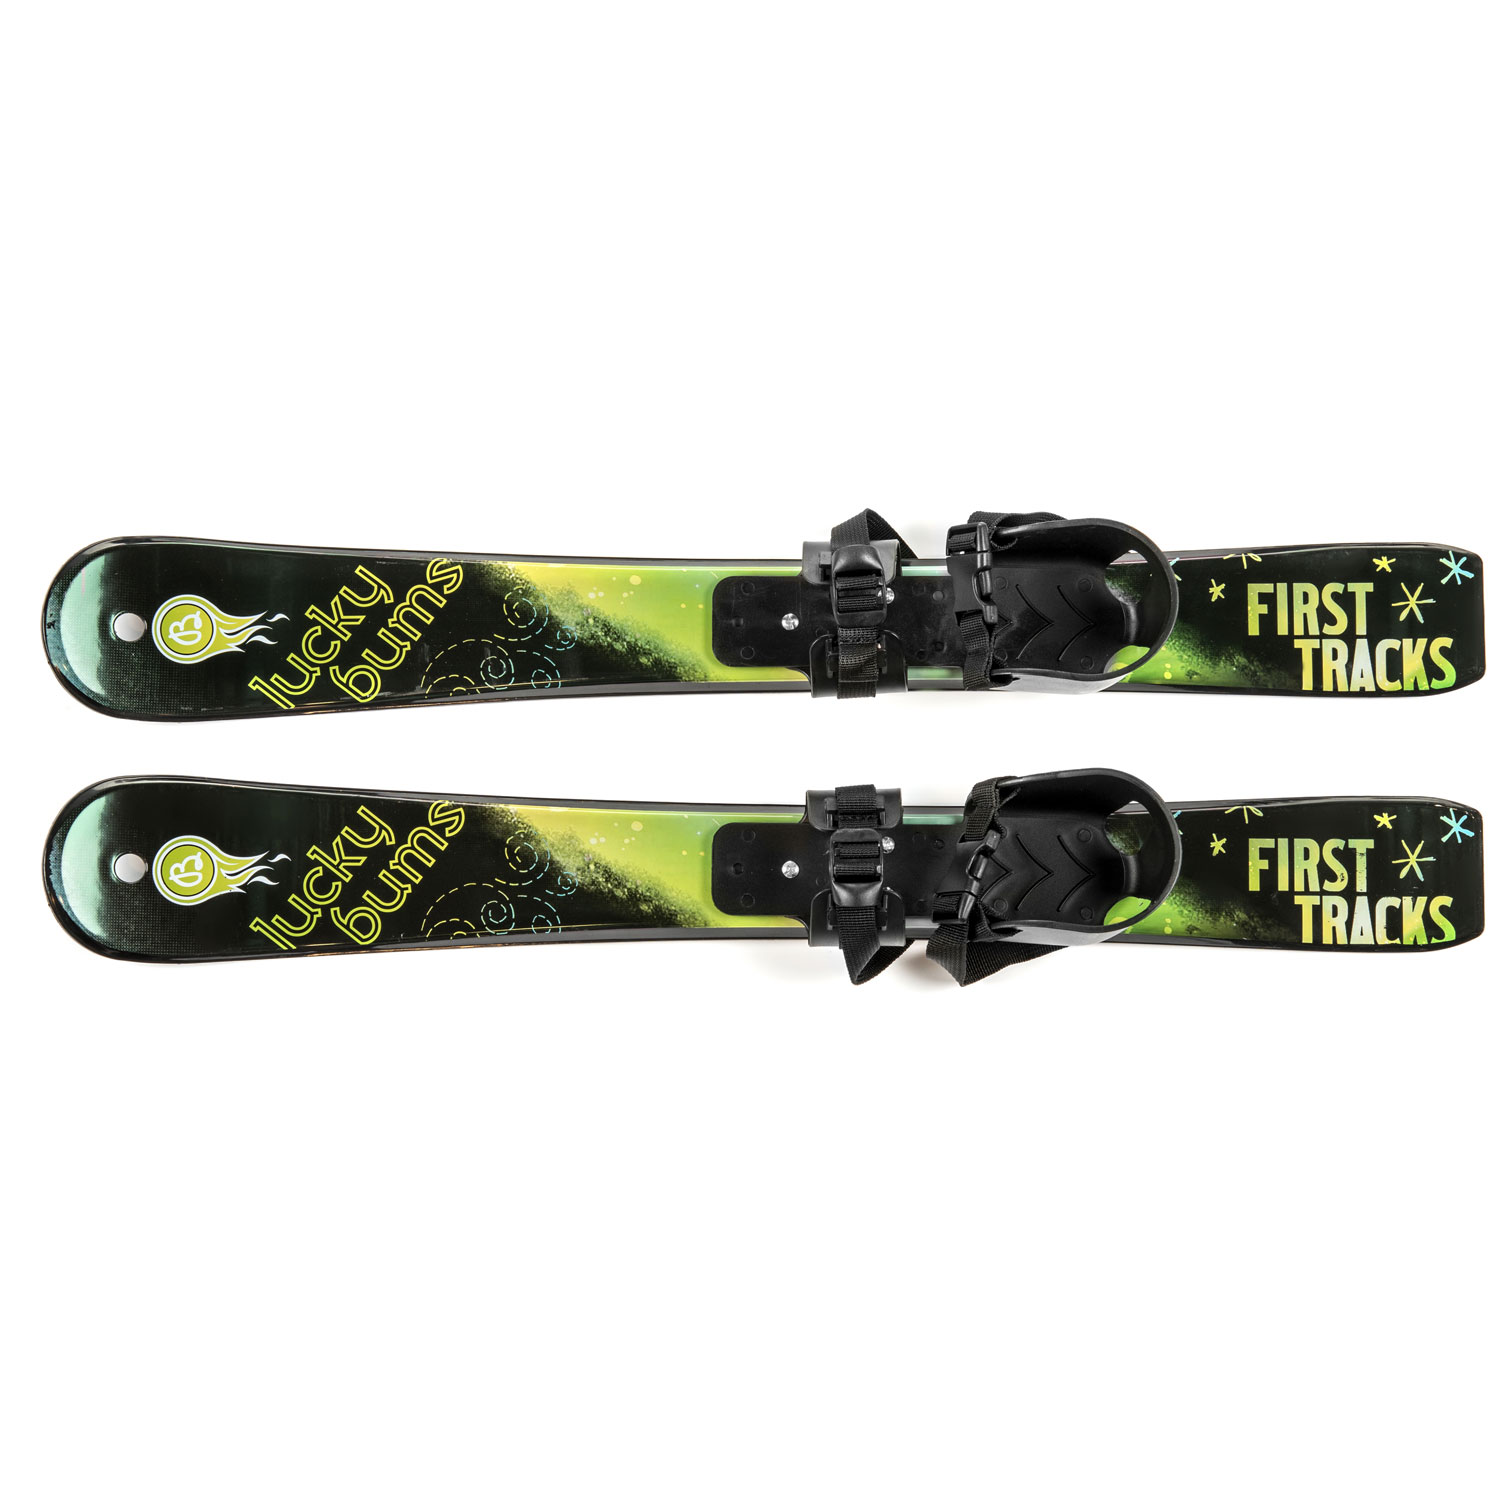 Kids BeginnerSnow Skis without Poles, 70cm, Green Black by Lucky Bums